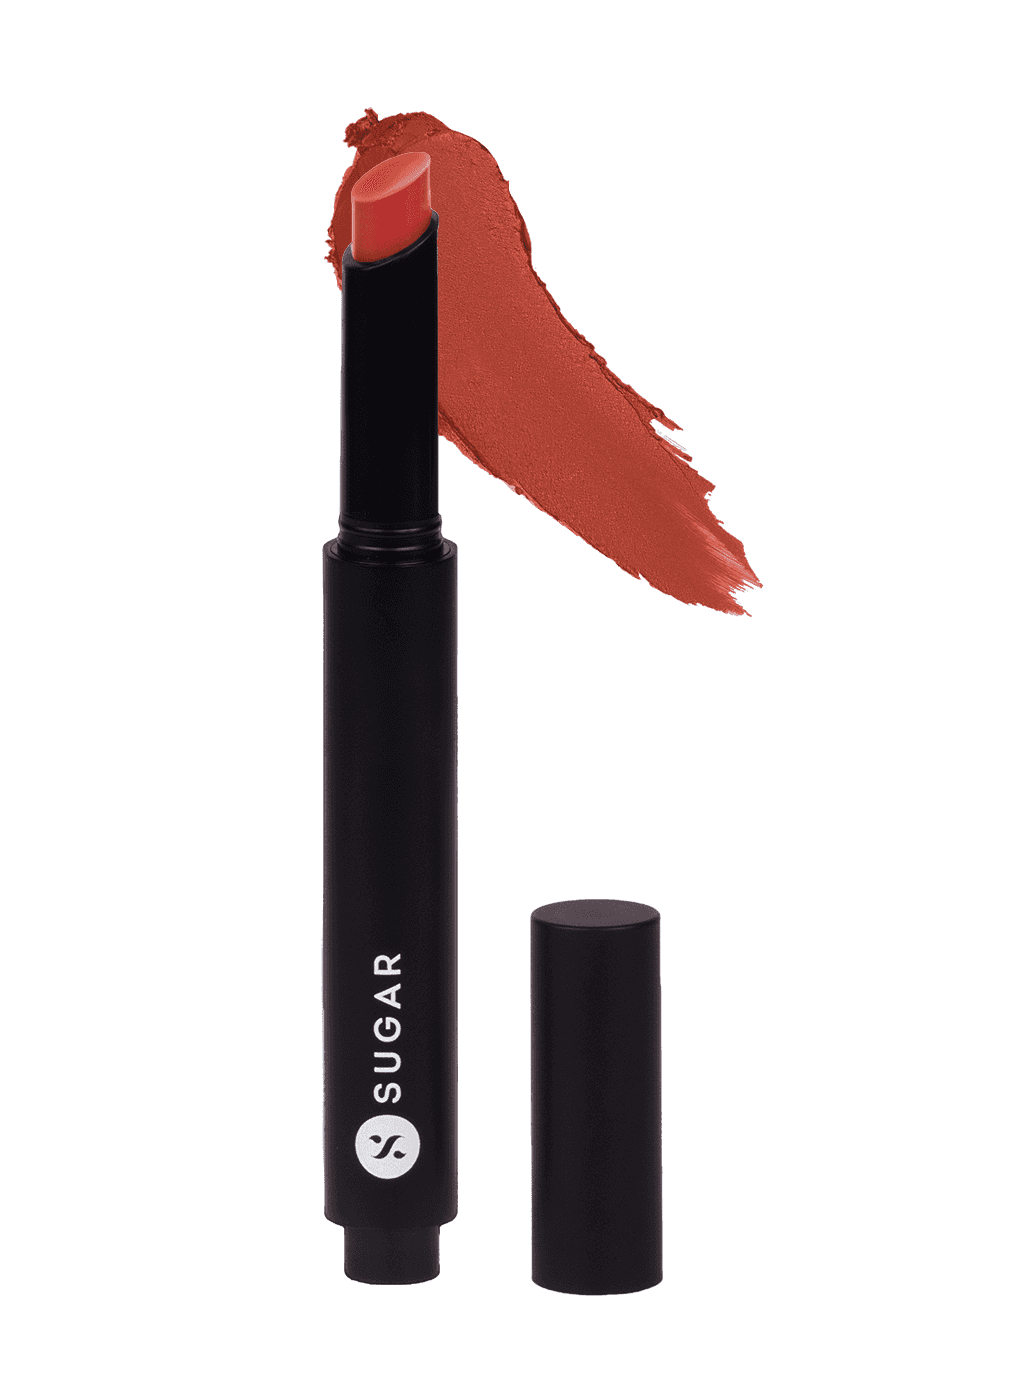 SUGAR Click Me Up Velvet Lipstick - 03 Foxy Fawn (Burnt Red Brown Nude/Rusty Nude)